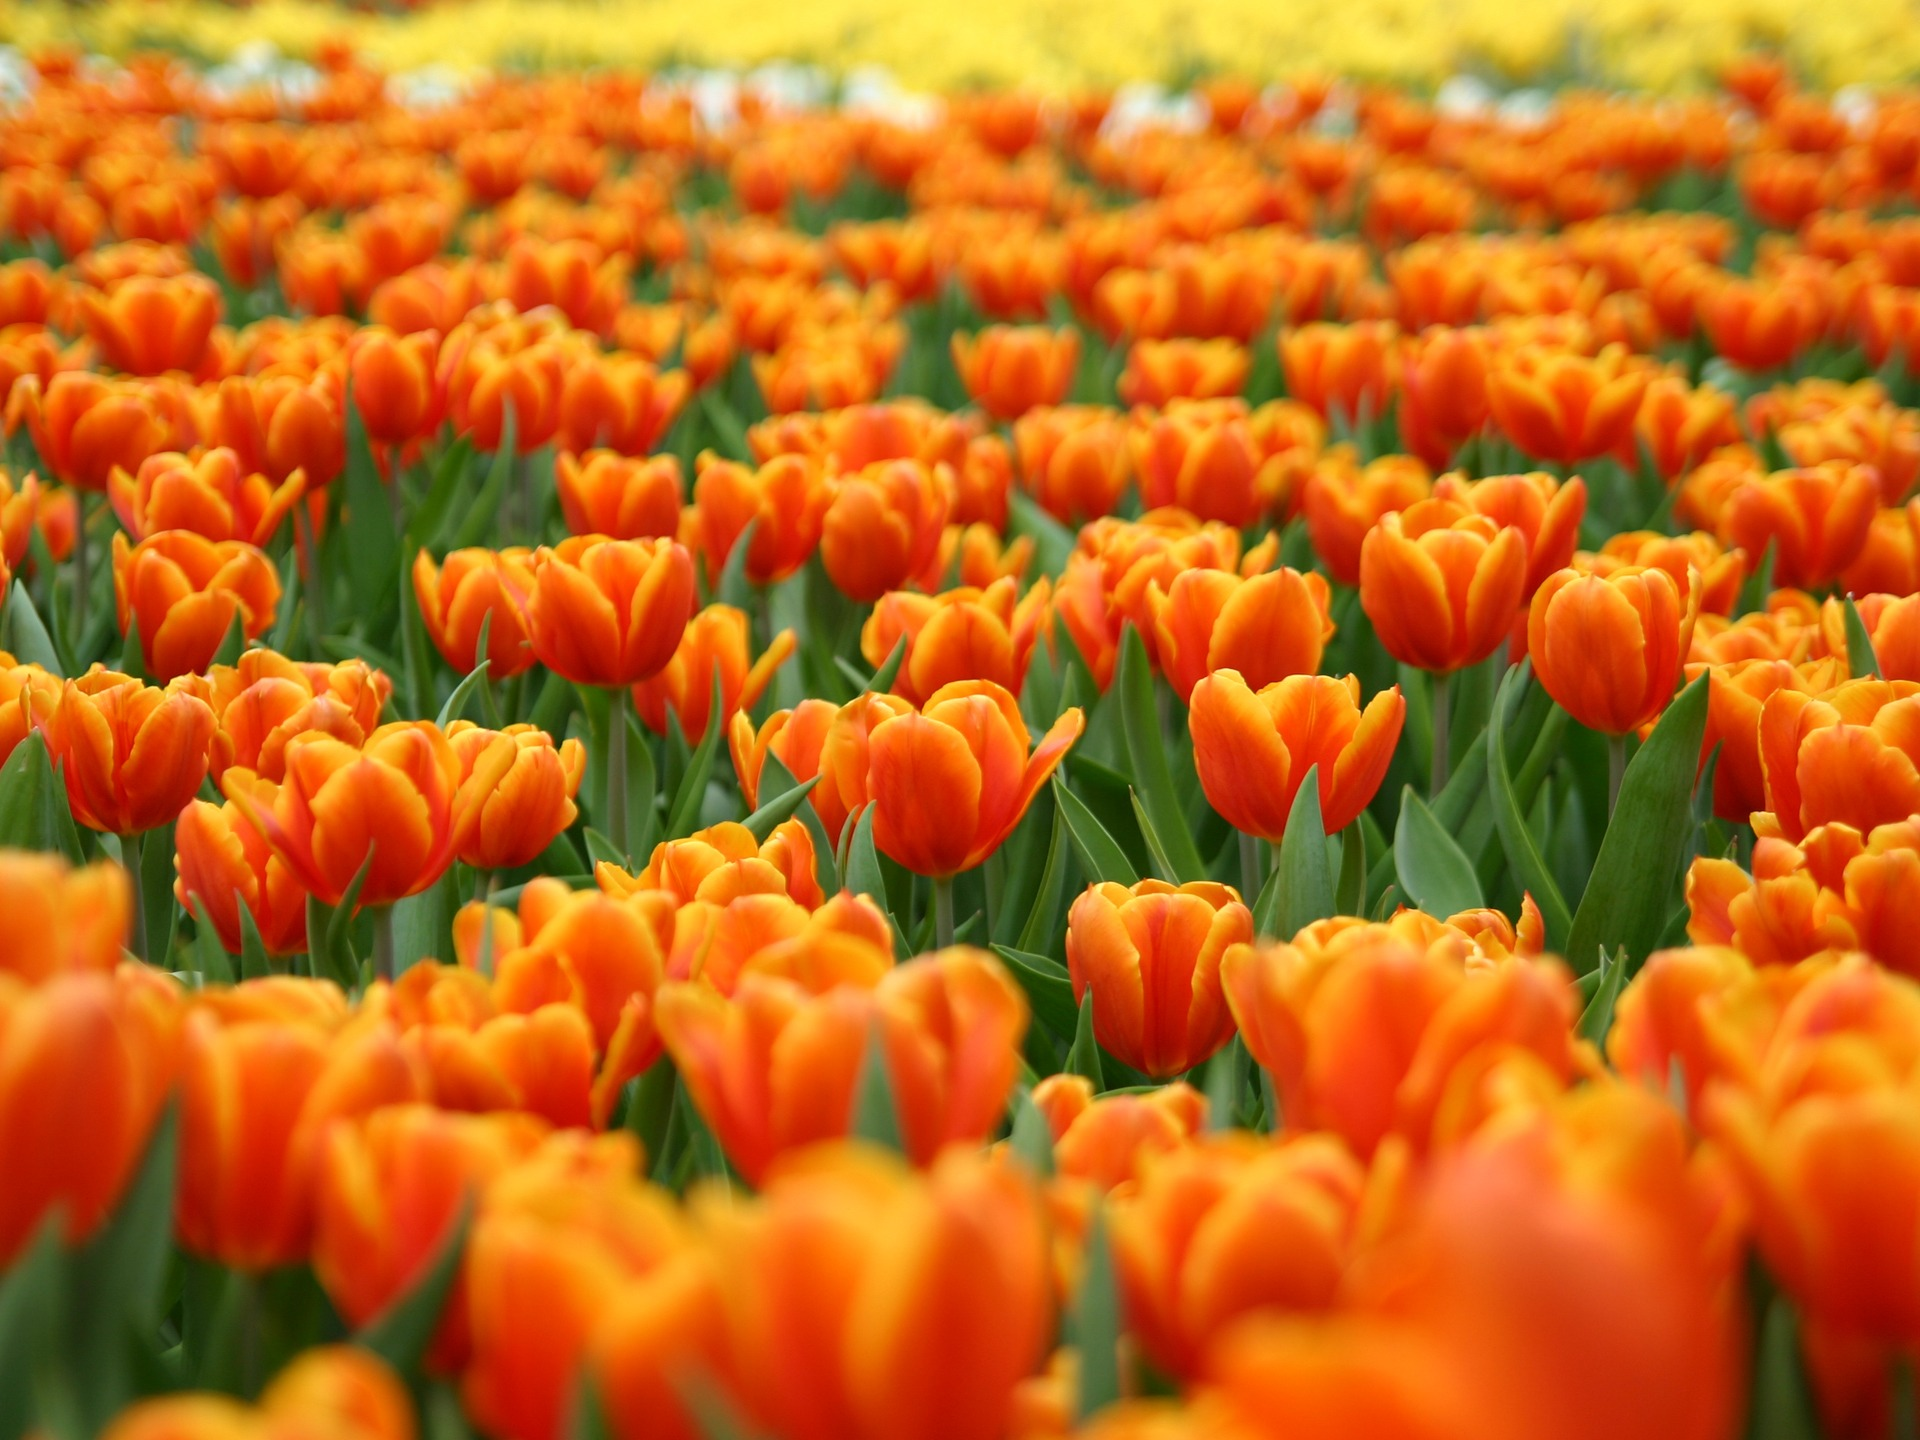 Orange Tulips Wallpaper Flowers Nature Wallpapers in jpg format for ...